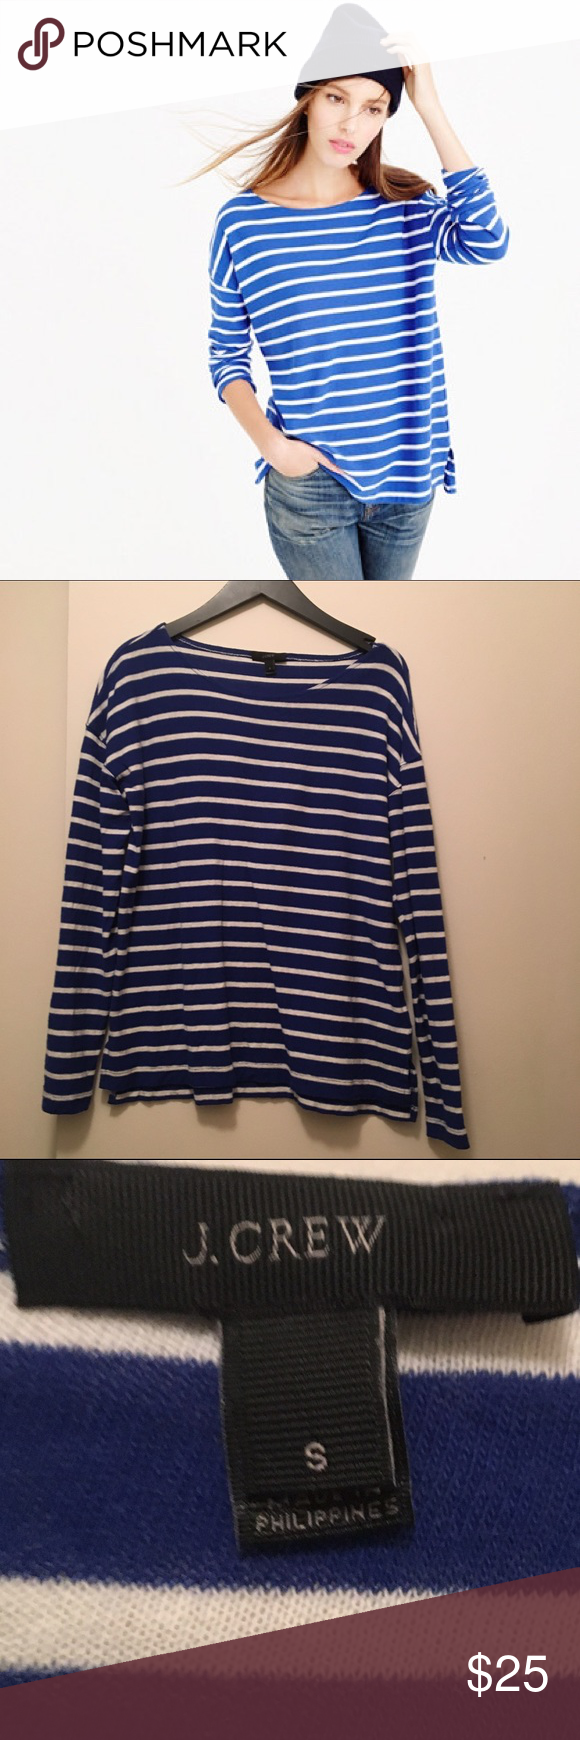 Jcrew deck stripe tee blue and white Great condition J. Crew Tops Tees - Long Sleeve